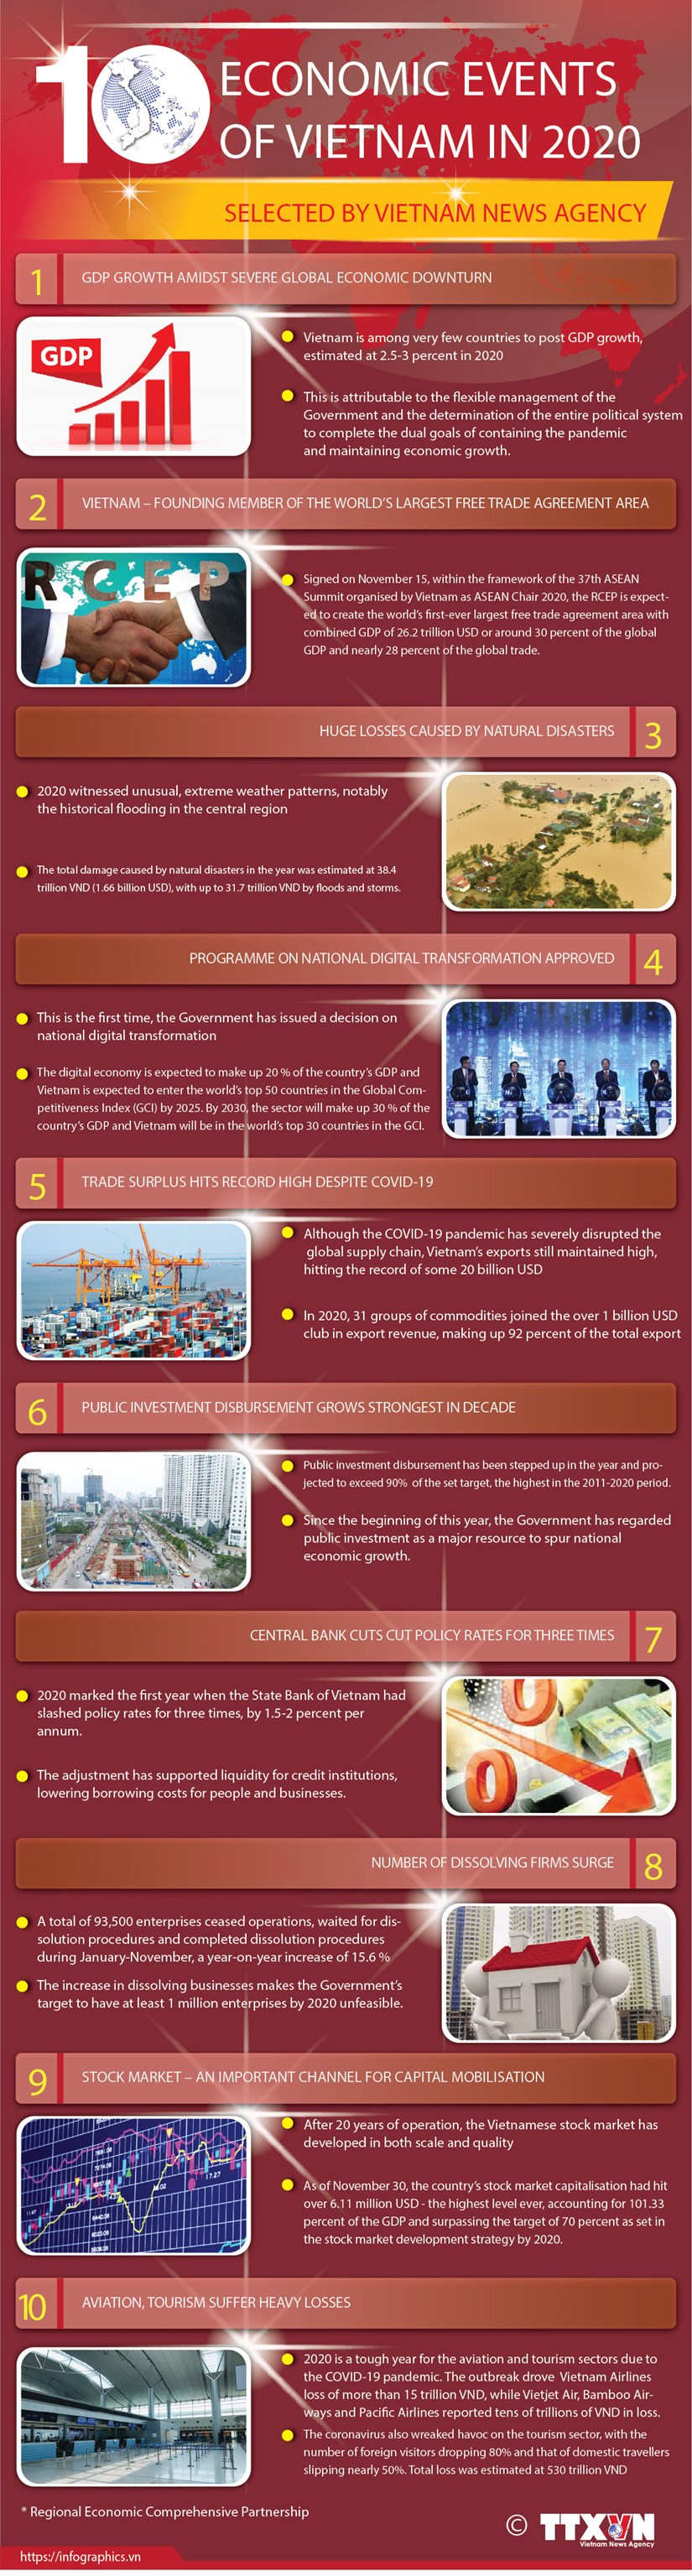 Top 10 economic events of Vietnam in 2020 hinh anh 1